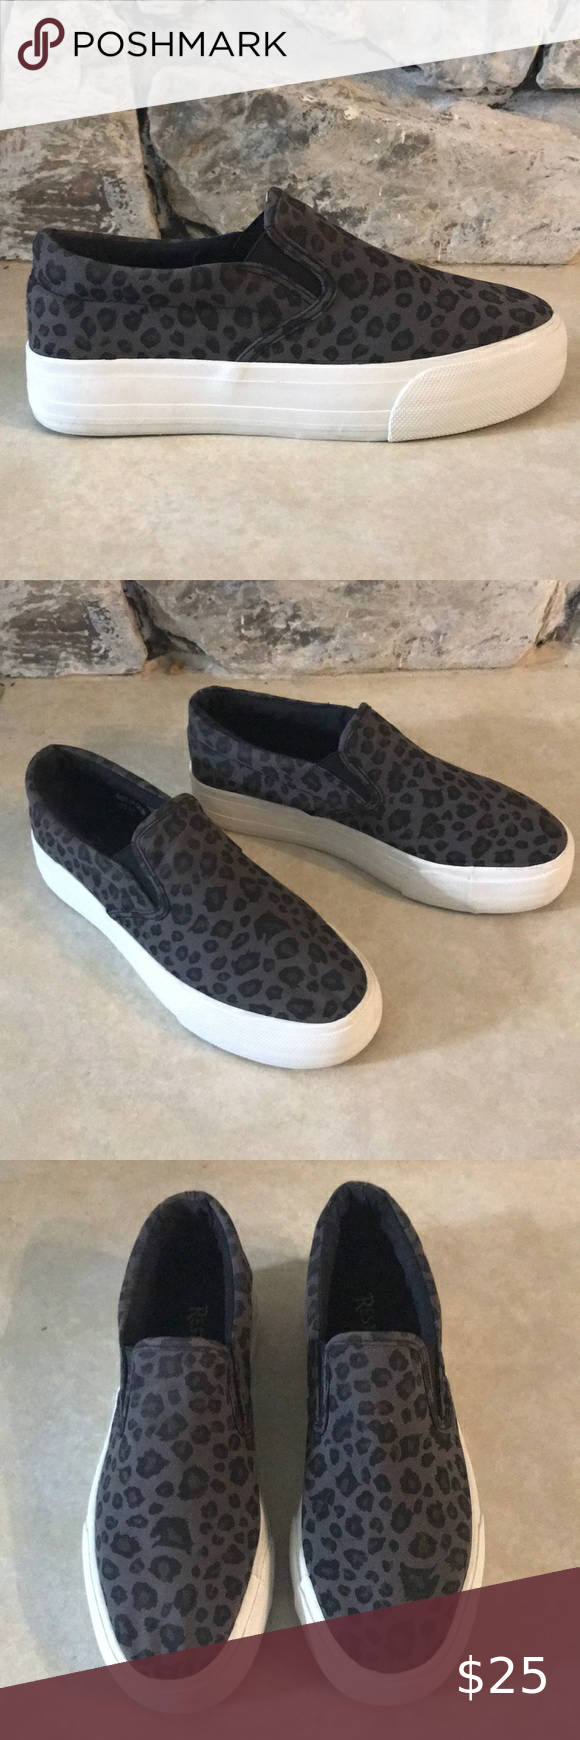 Restricted Slip On Sneakers Size 6.5 in